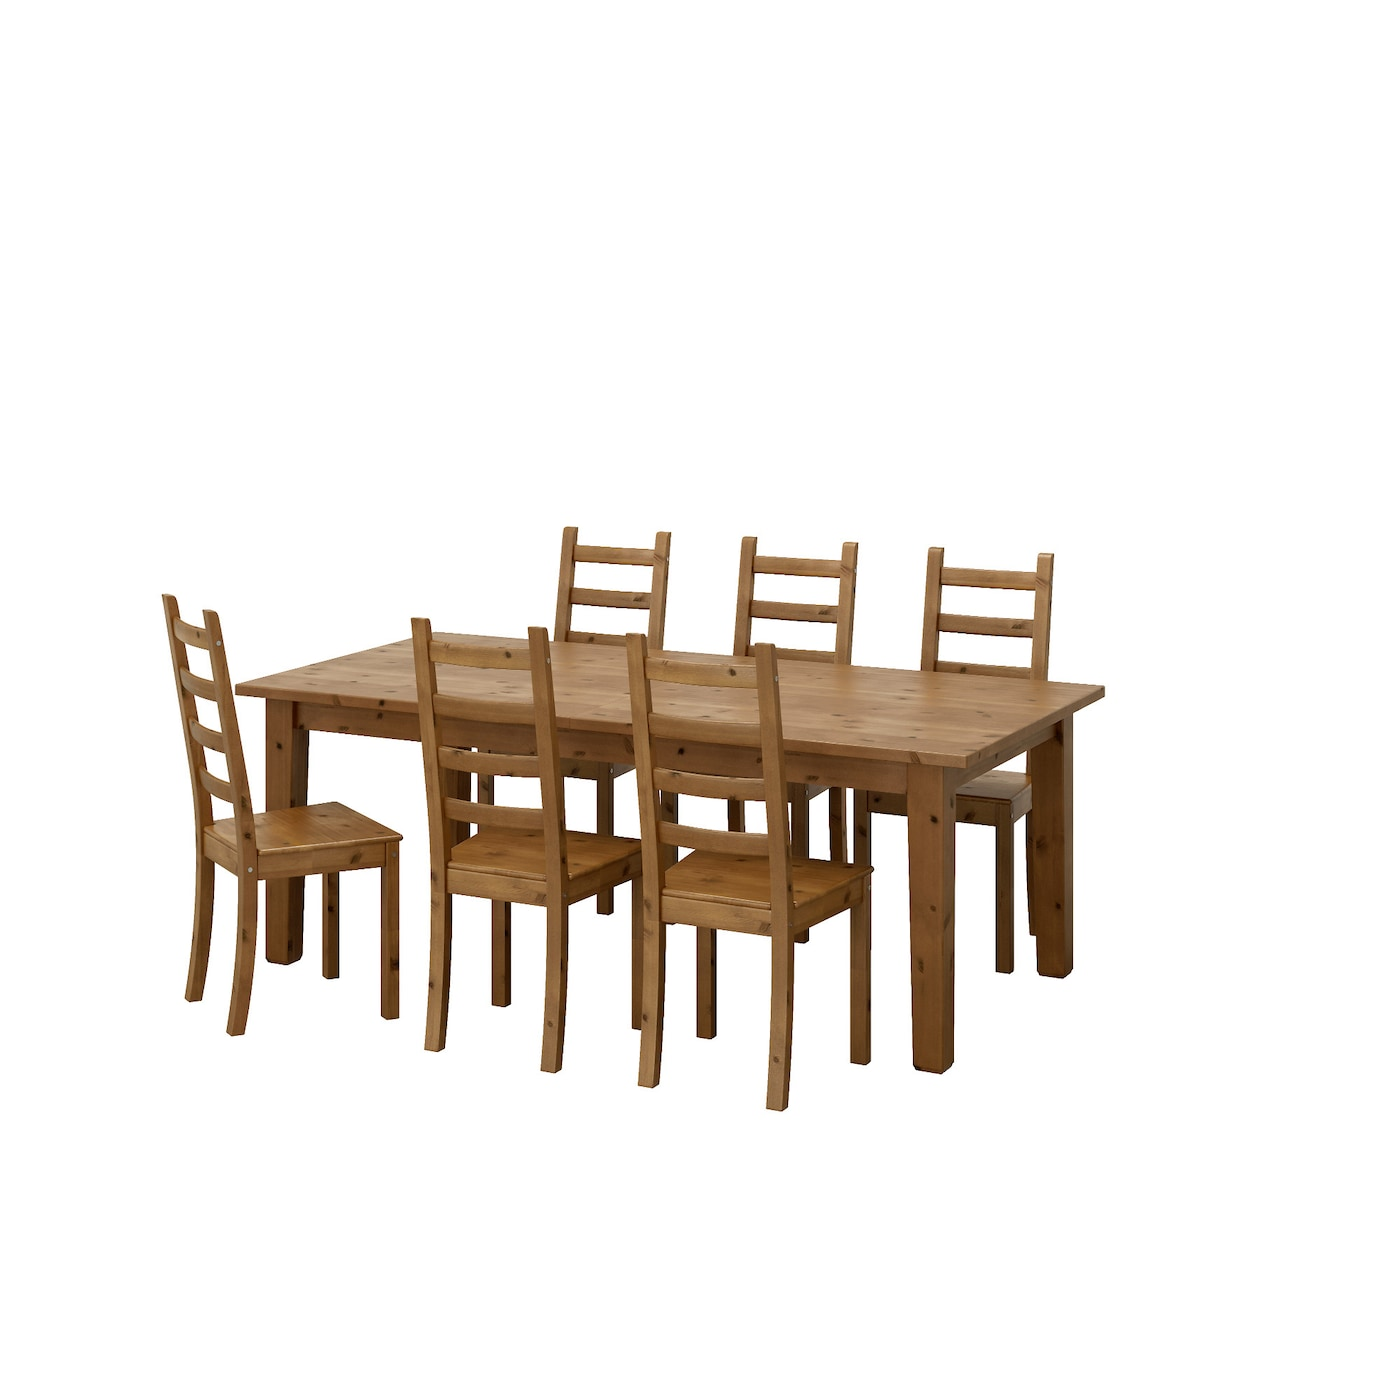 IKEA KAUSTBY/STORNÄS table and 6 chairs Solid pine; a natural material that ages beautifully.